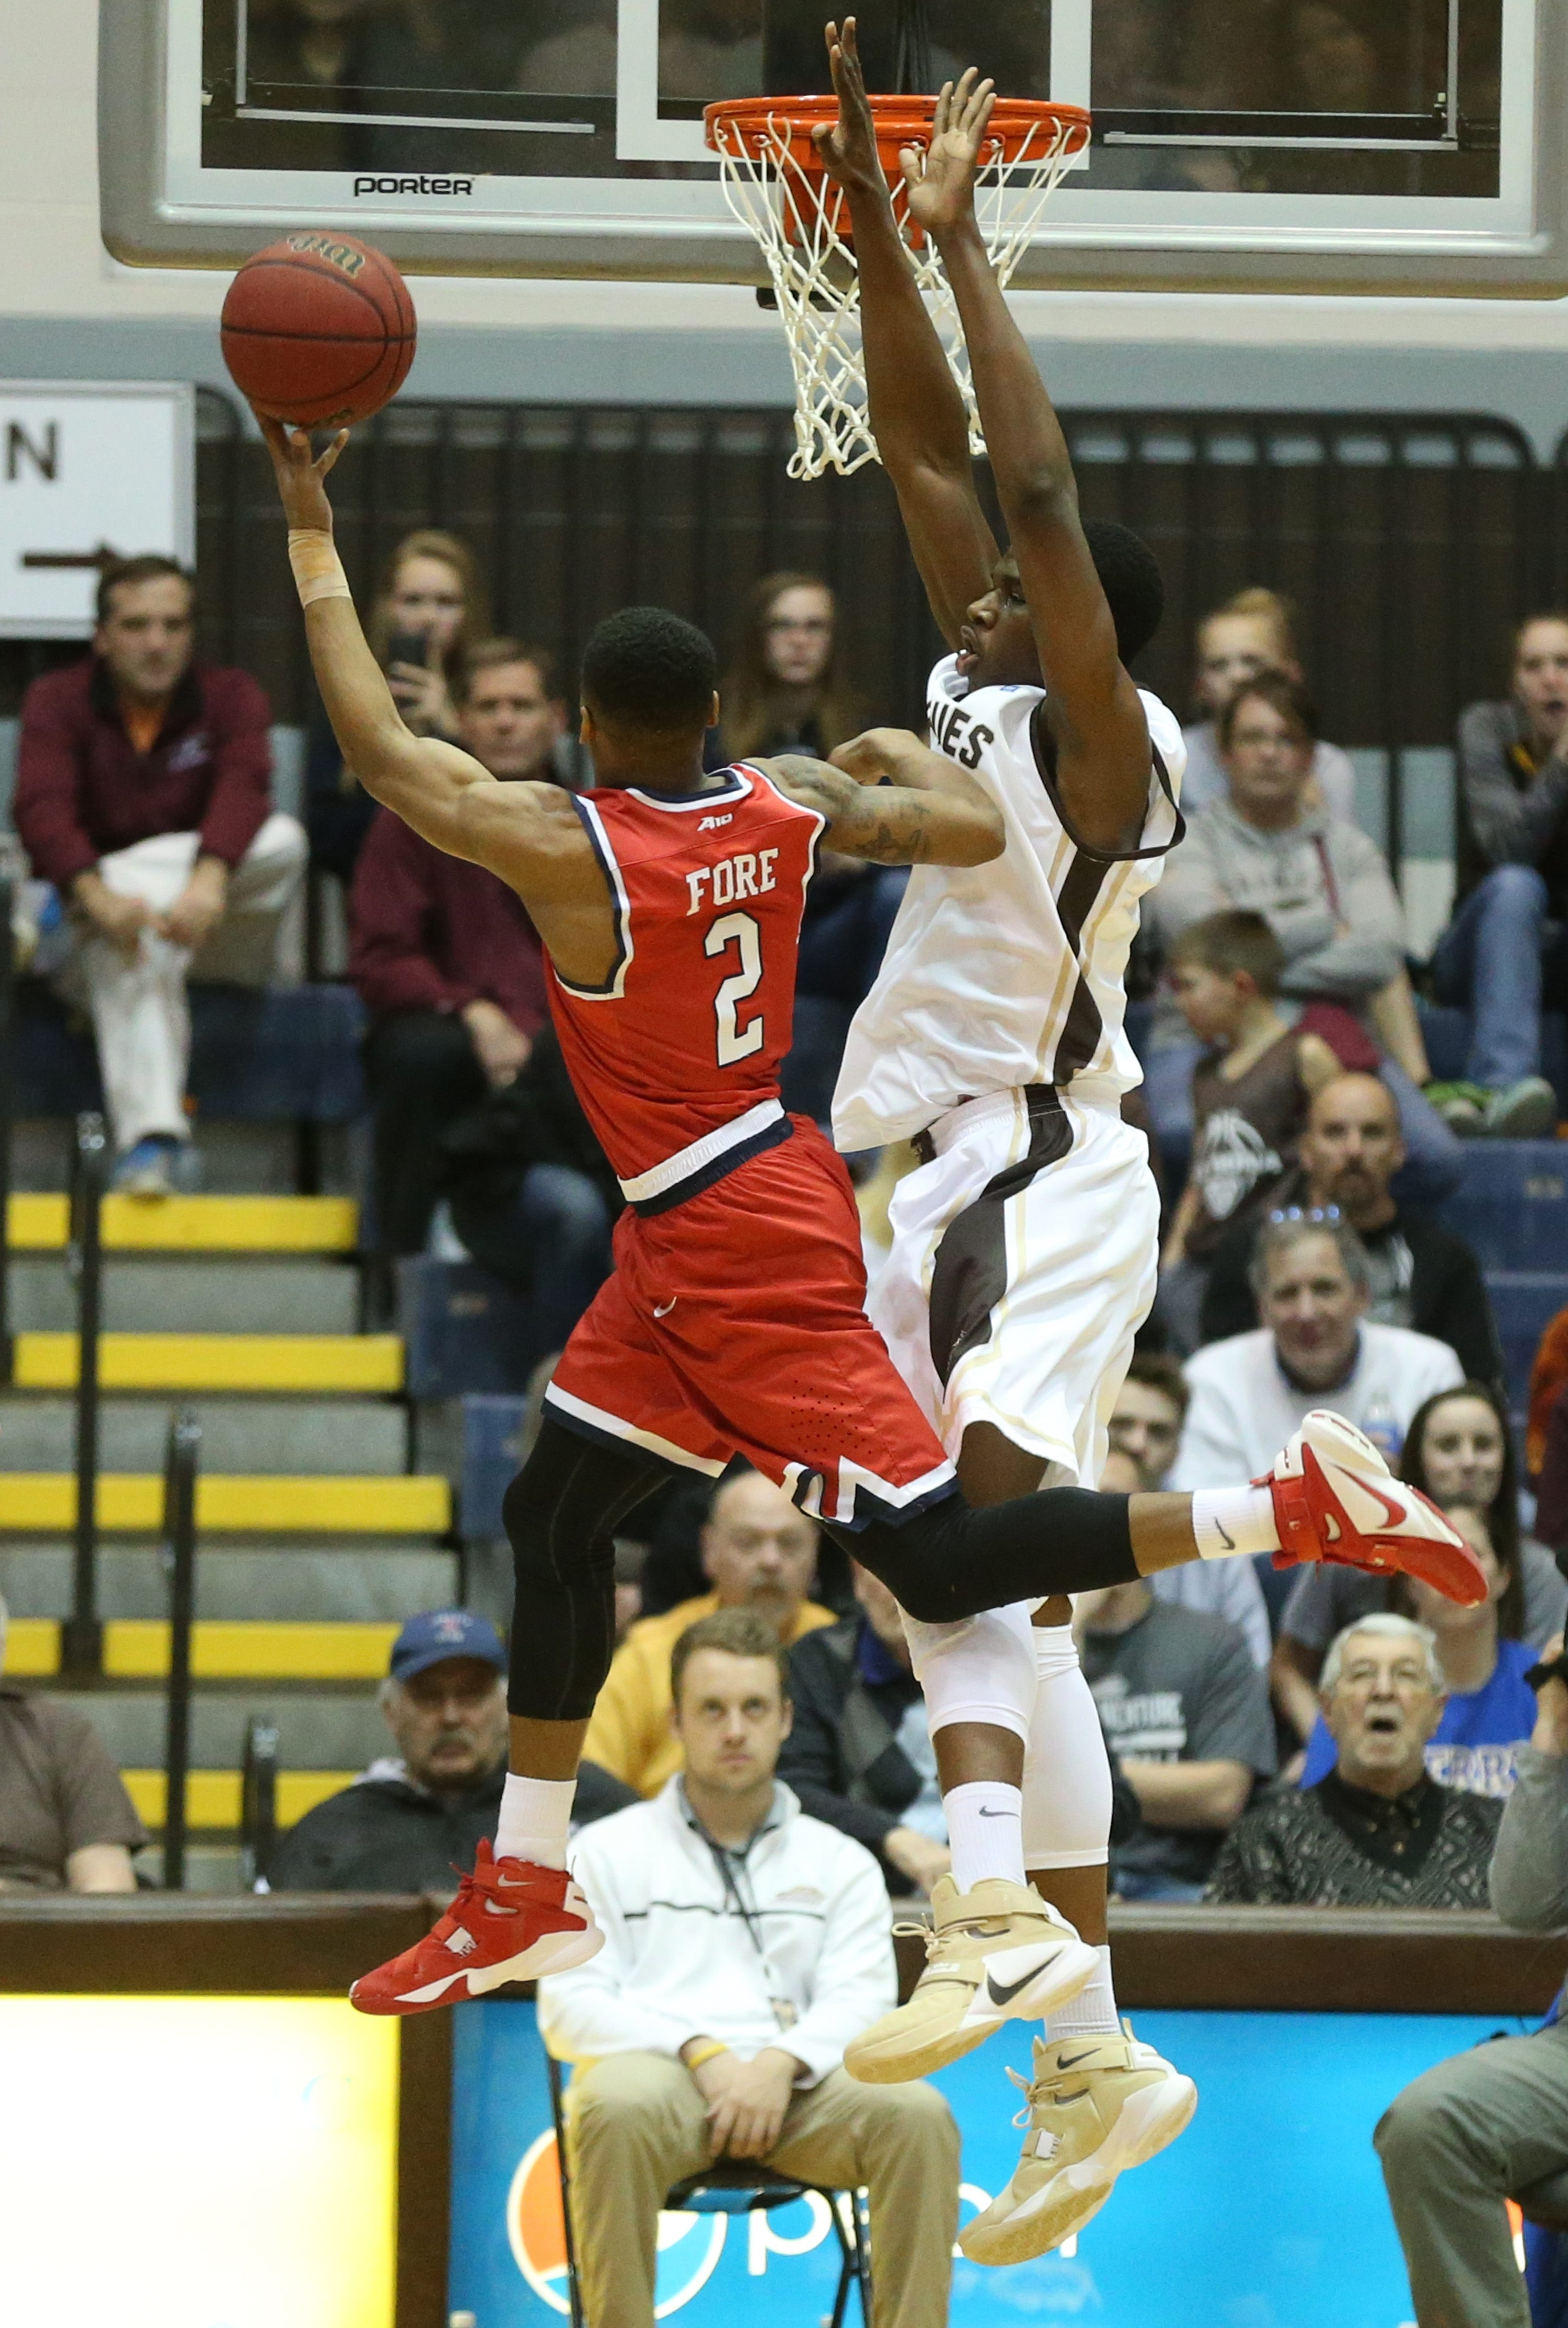 St. Bonaventure's Jordan Tyson blocks a shot by Richmond guard Khwan Fore in the first half. Tyson, a 6-10 redshirt freshman center, had five blocks, five points and five rebounds in 20 minutes.